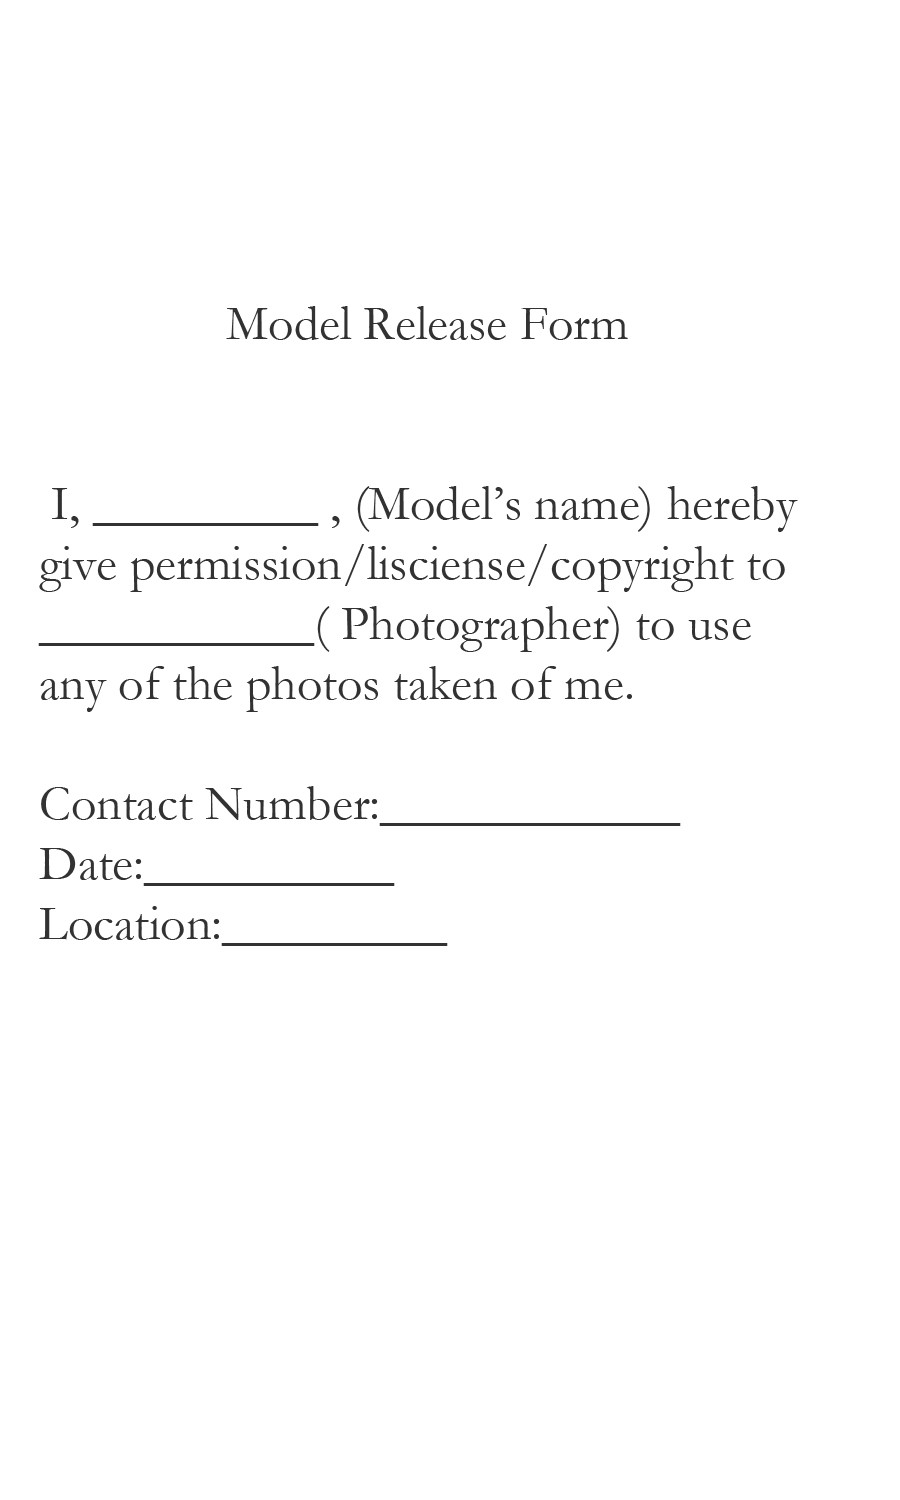 Model Release form Template